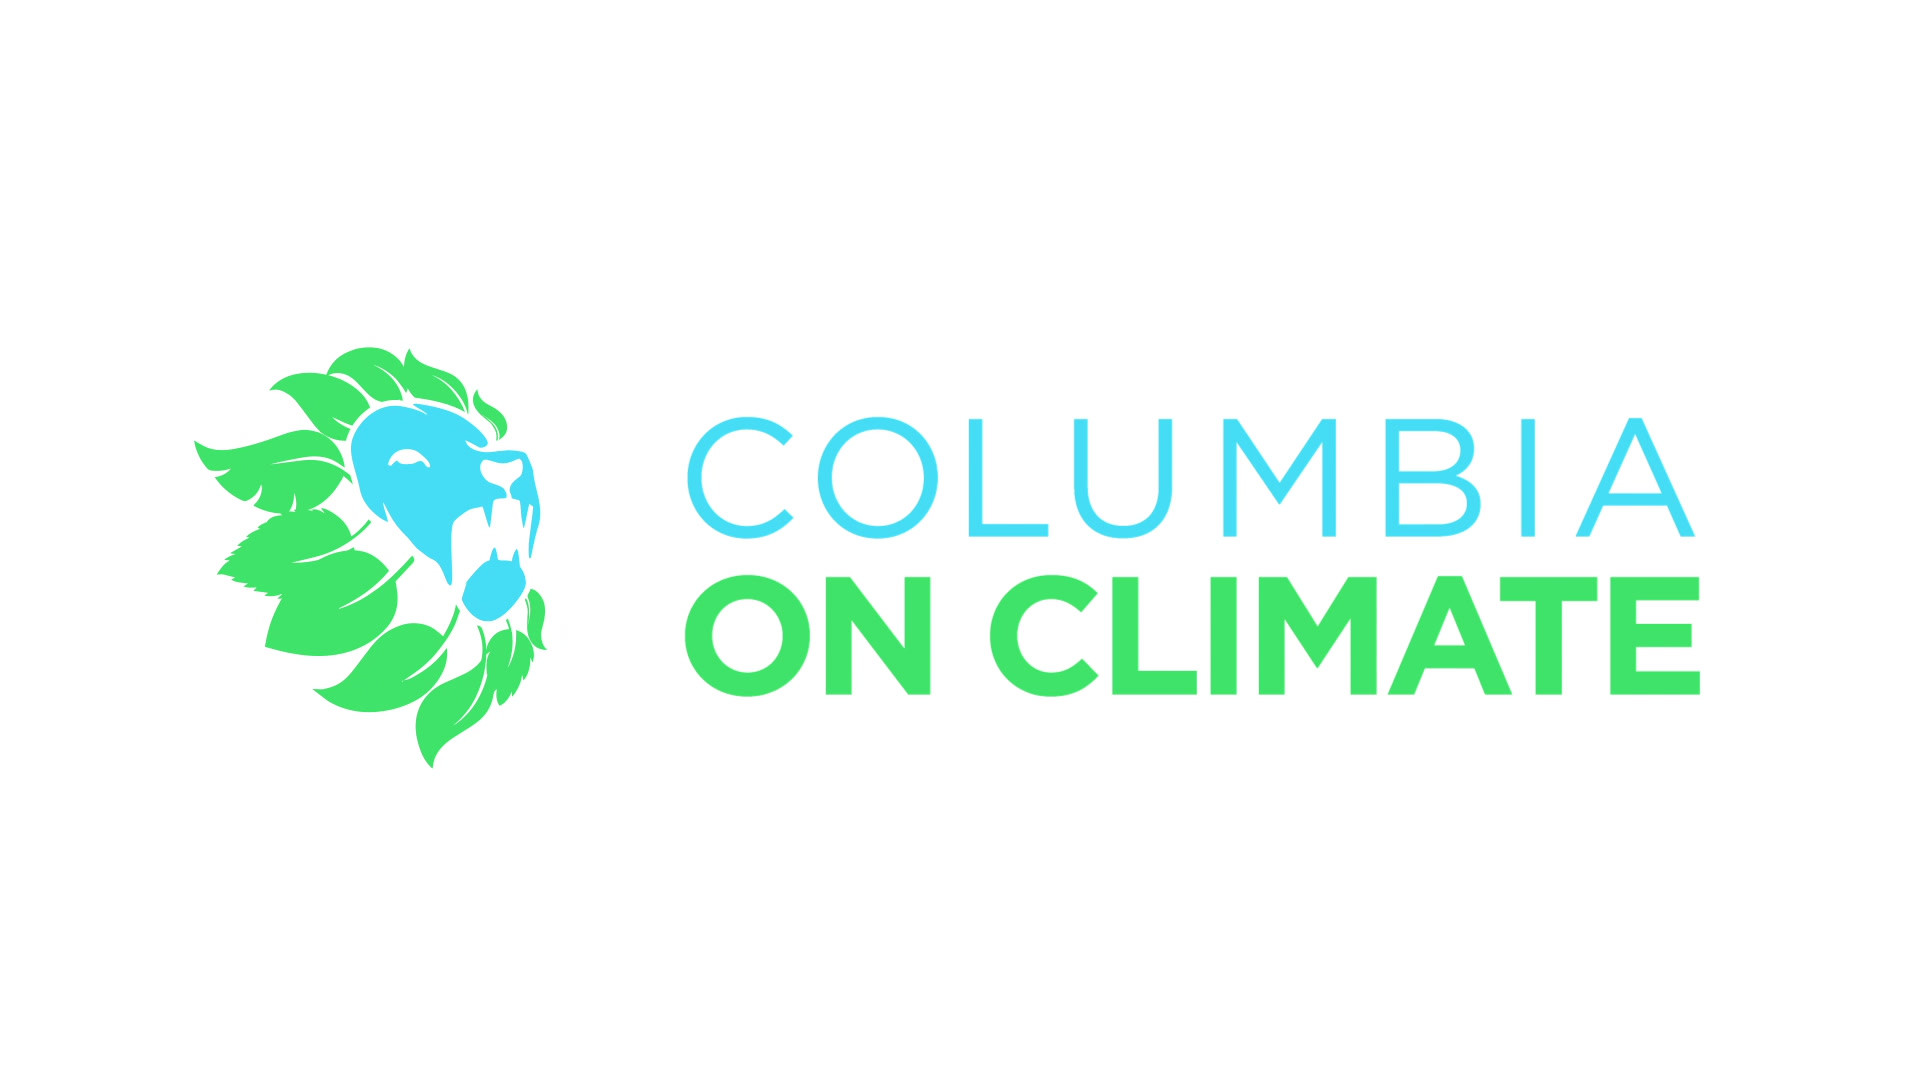 007-205_Columbia on Climate_MOT_DS_F-1-4